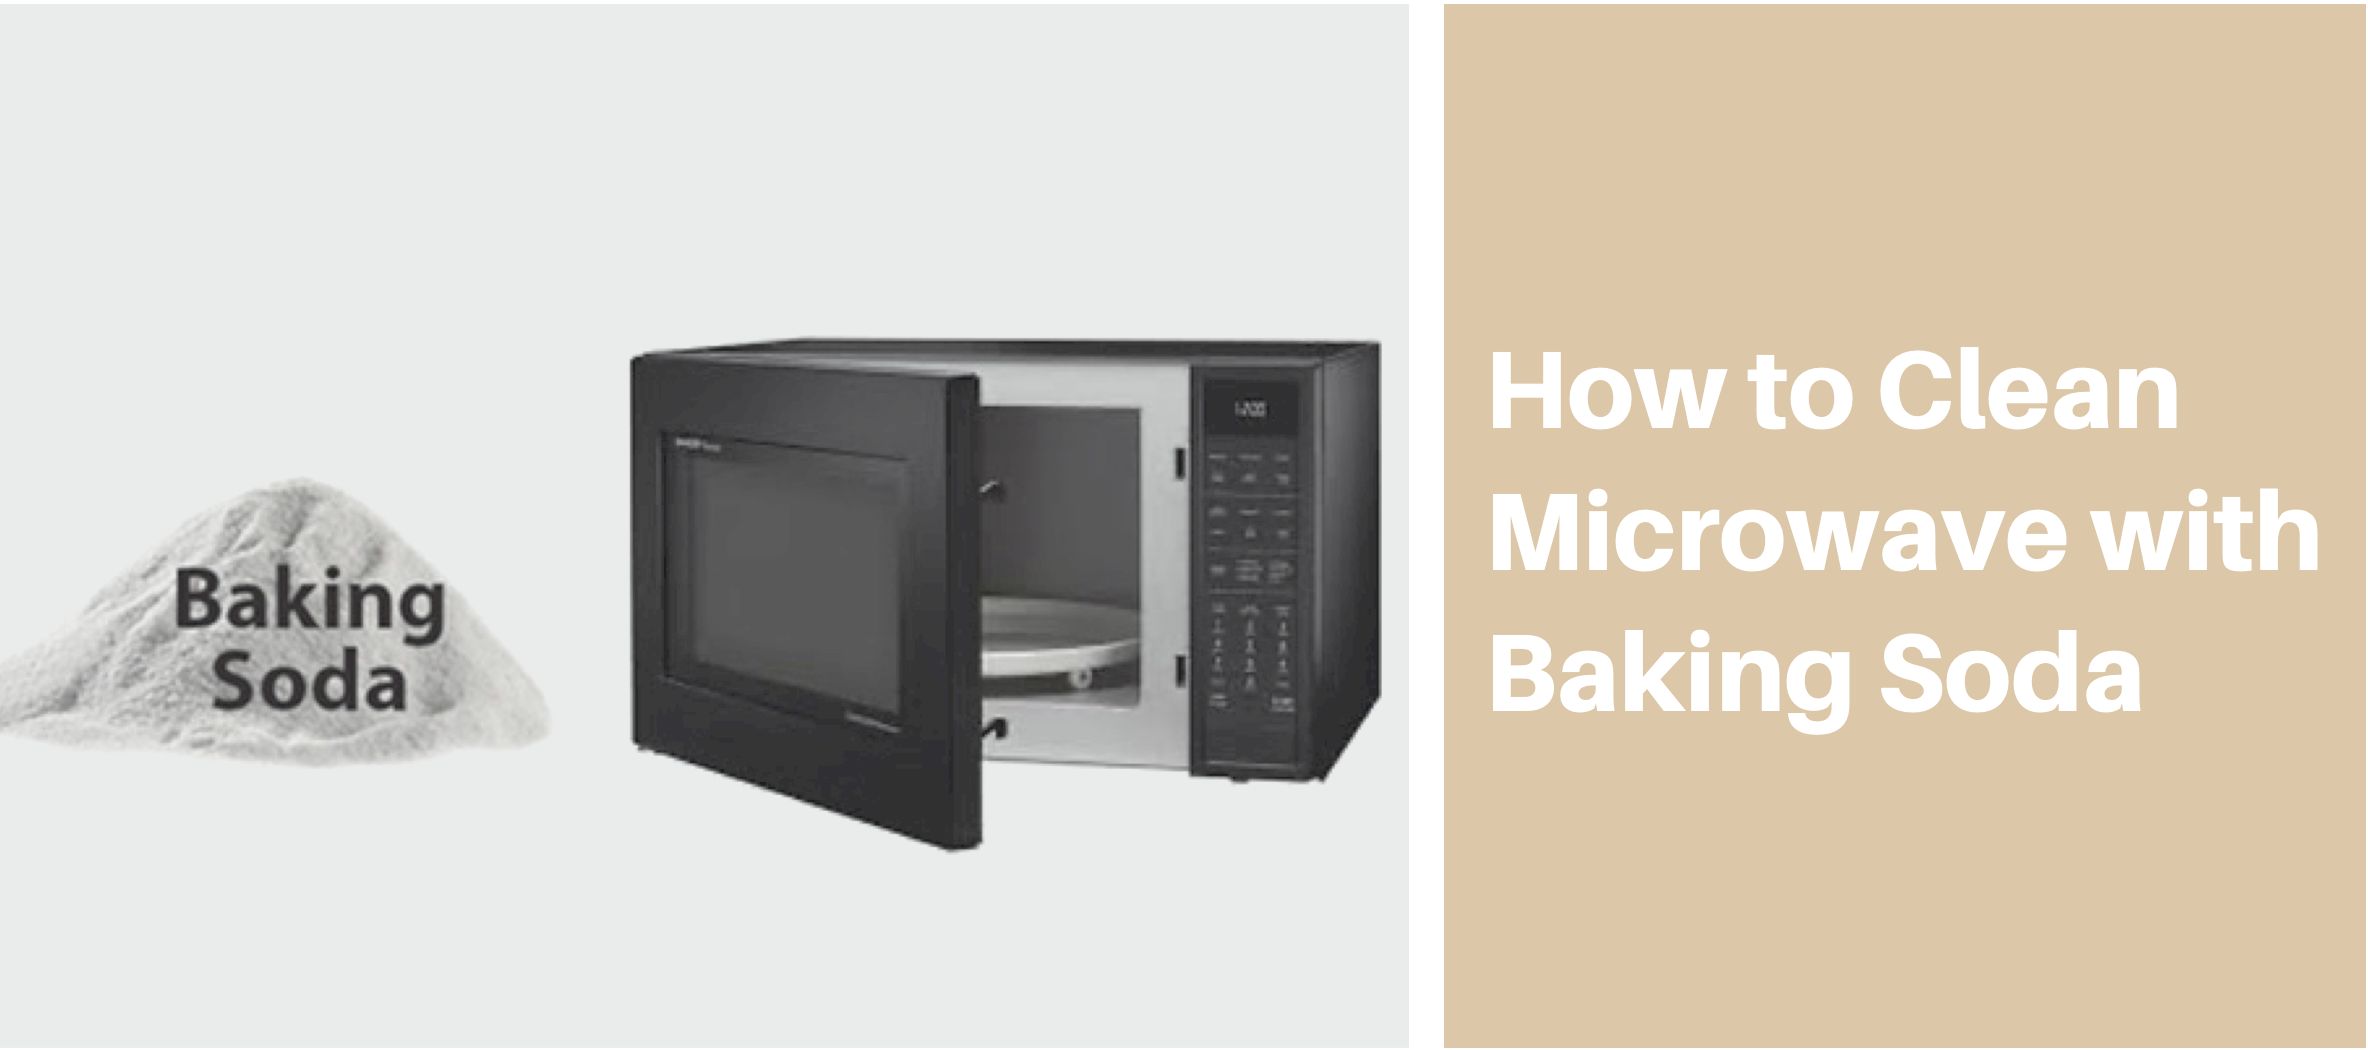 how-to-clean-microwave-with-baking-soda